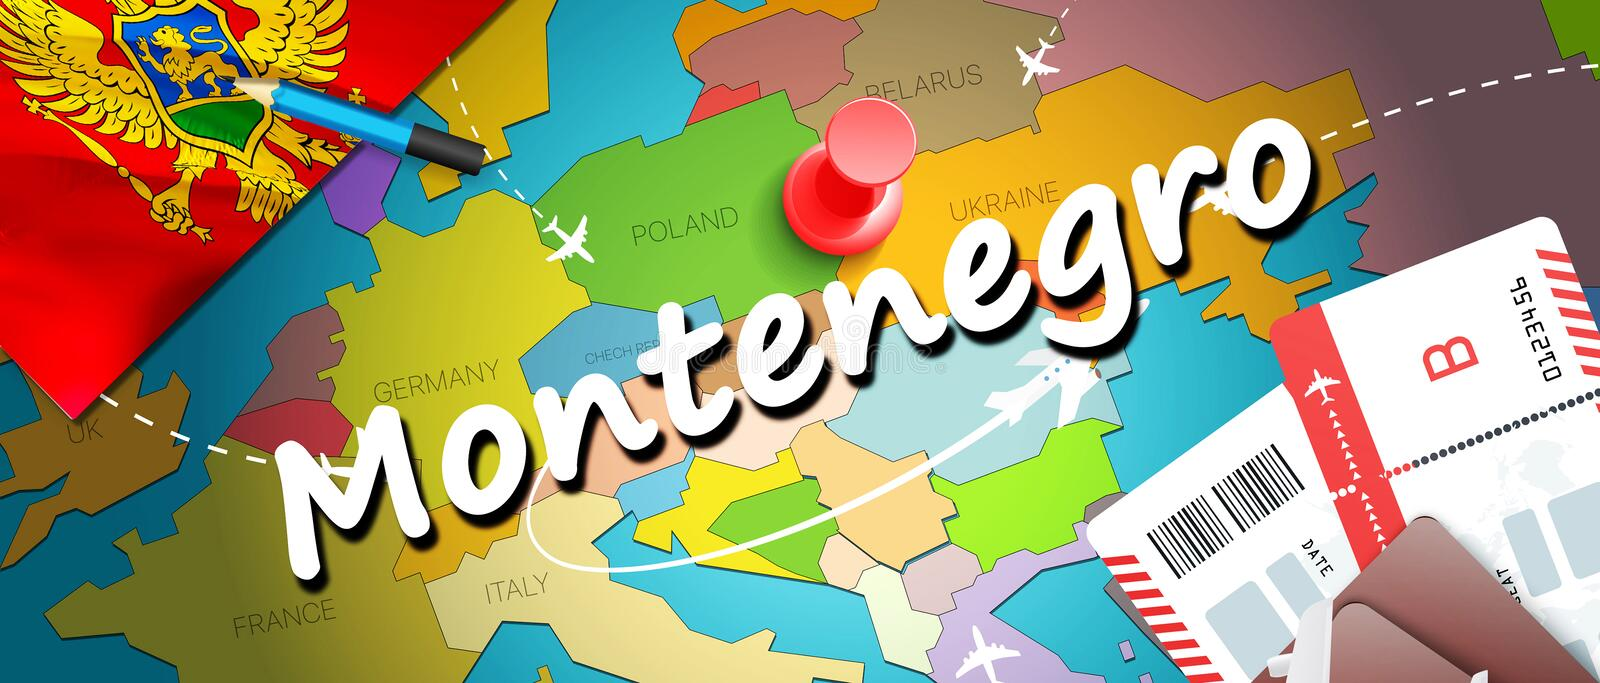 Montenegro travel concept map background with planes,tickets. Visit Montenegro travel and tourism destination concept. Montenegro. Flag on map. Planes and vector illustration